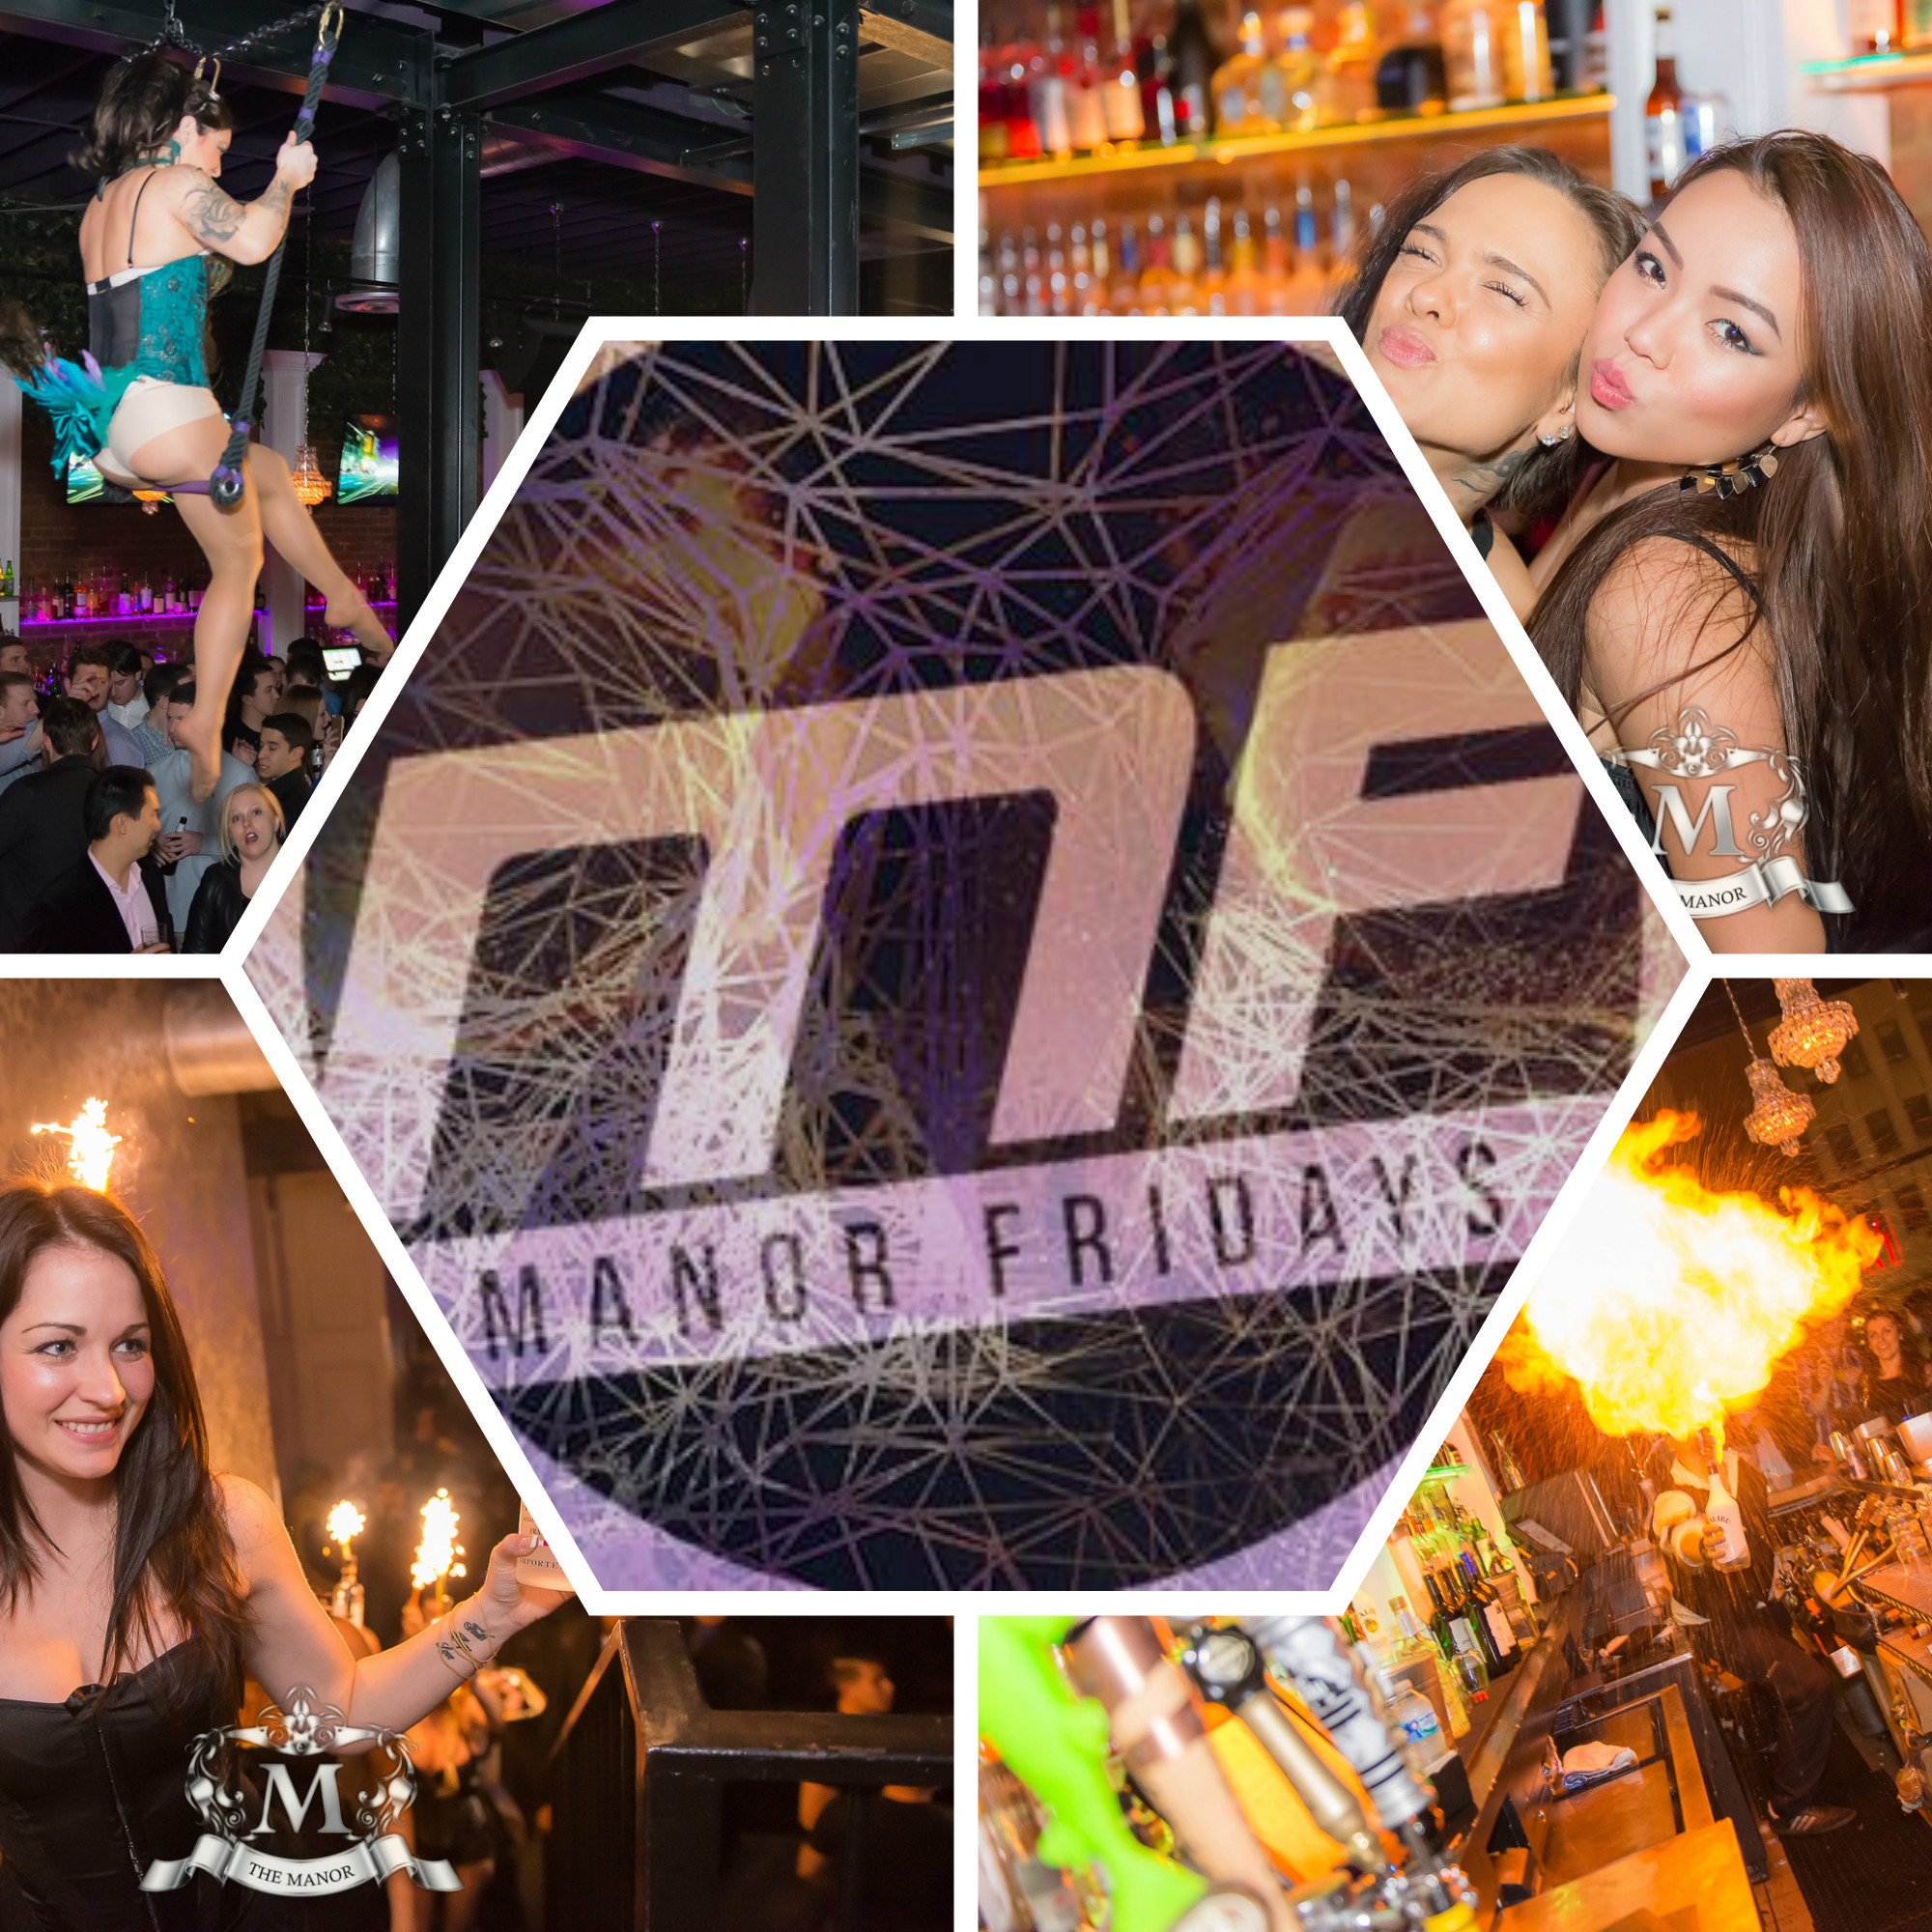 Manor DC Fridays